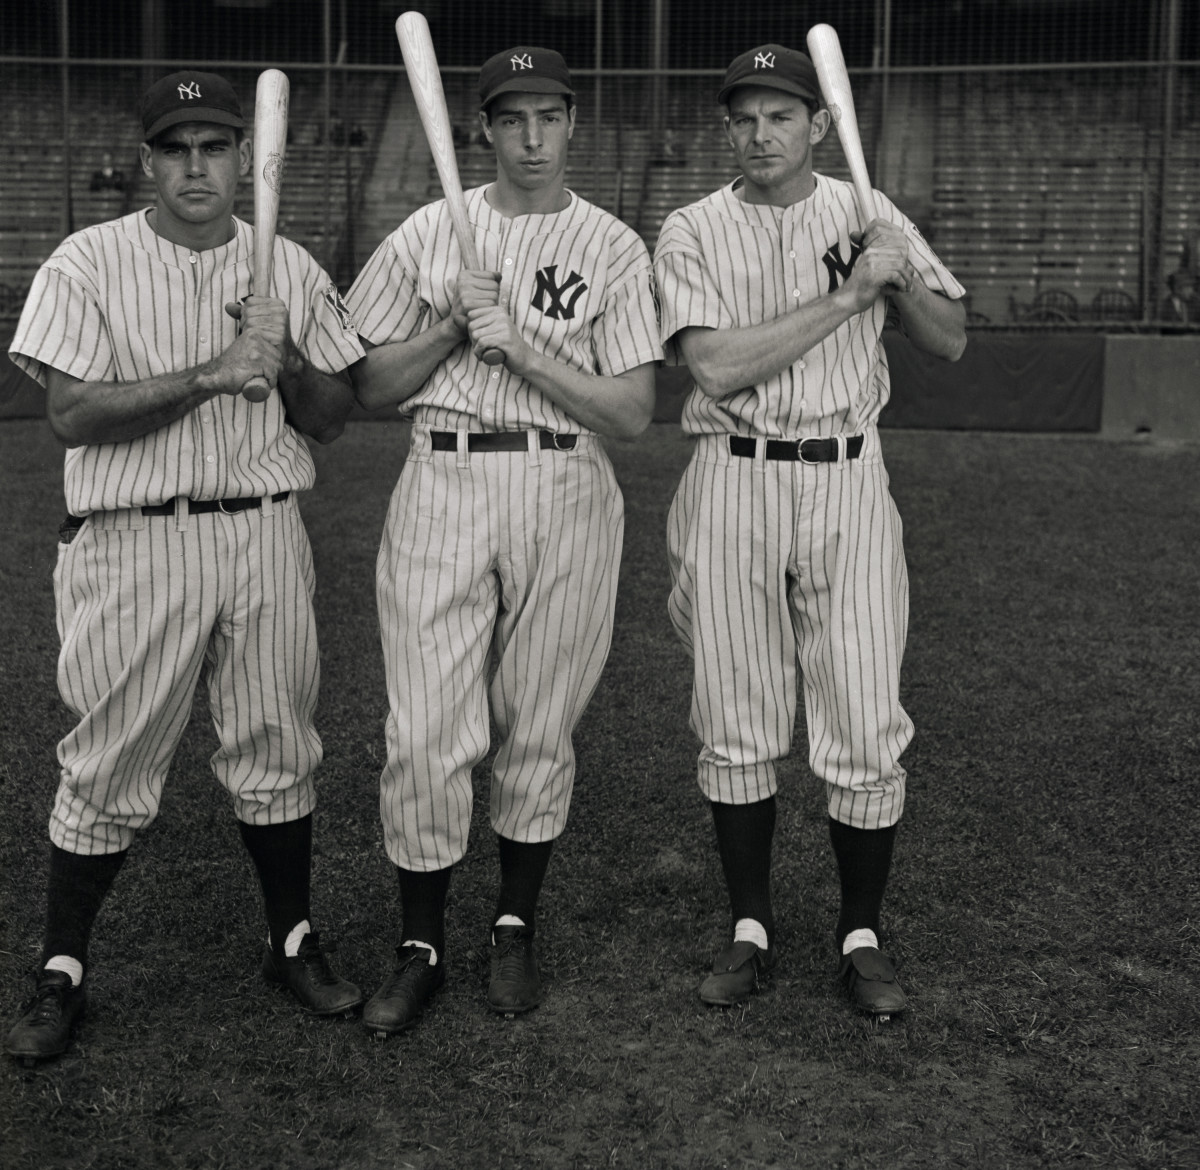 Original cutline from 1937 identified Joe DiMaggio in center and George Selkirk at right. Photo: Bettmann/Getty Images.